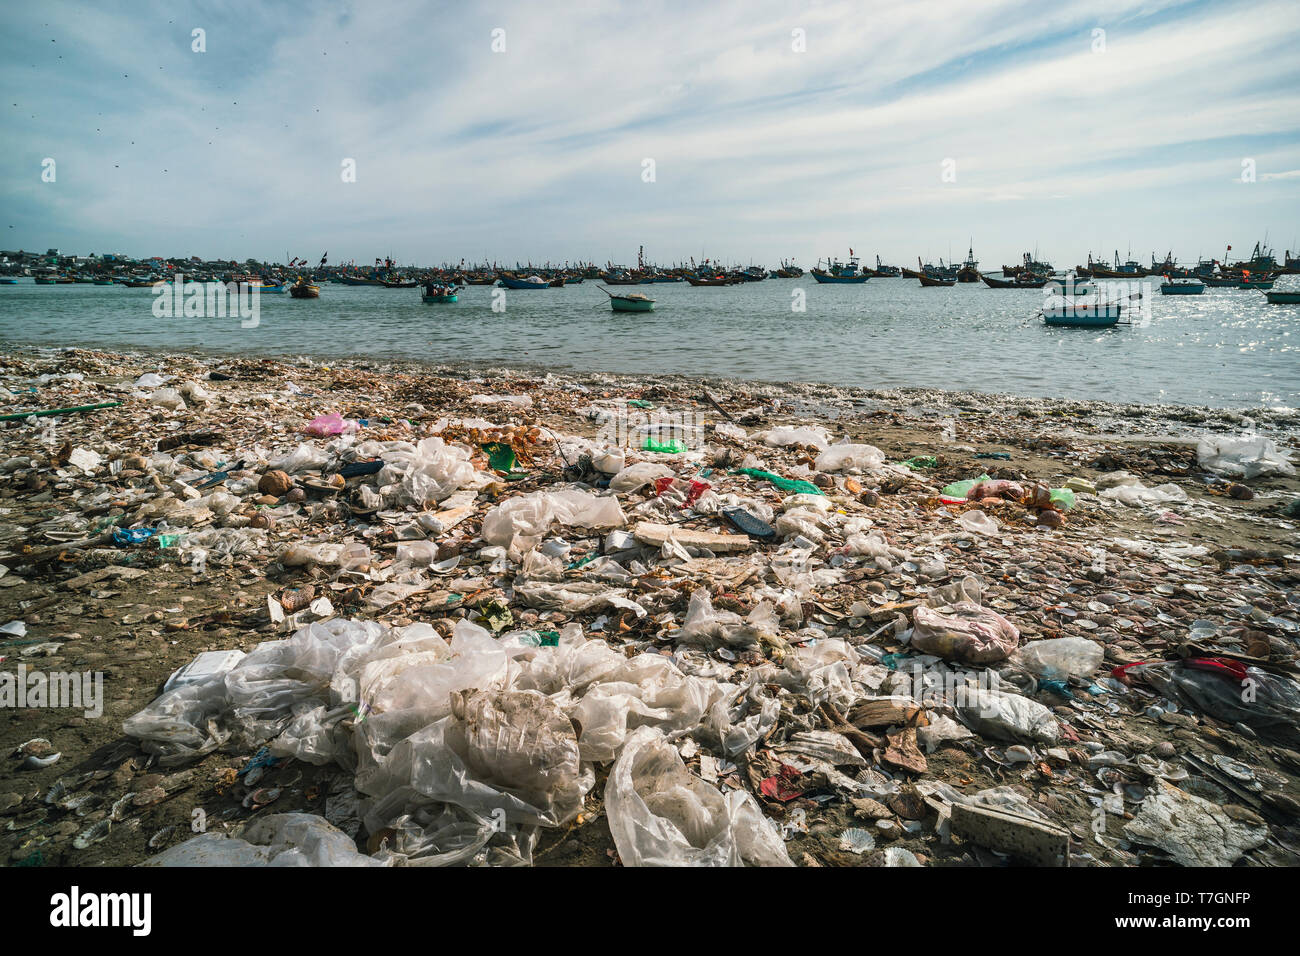 Garbage and basket boats on the beach. Bad environmental situation near the sea in Vietnam. MUI ne. Fishing village. - Stock Image